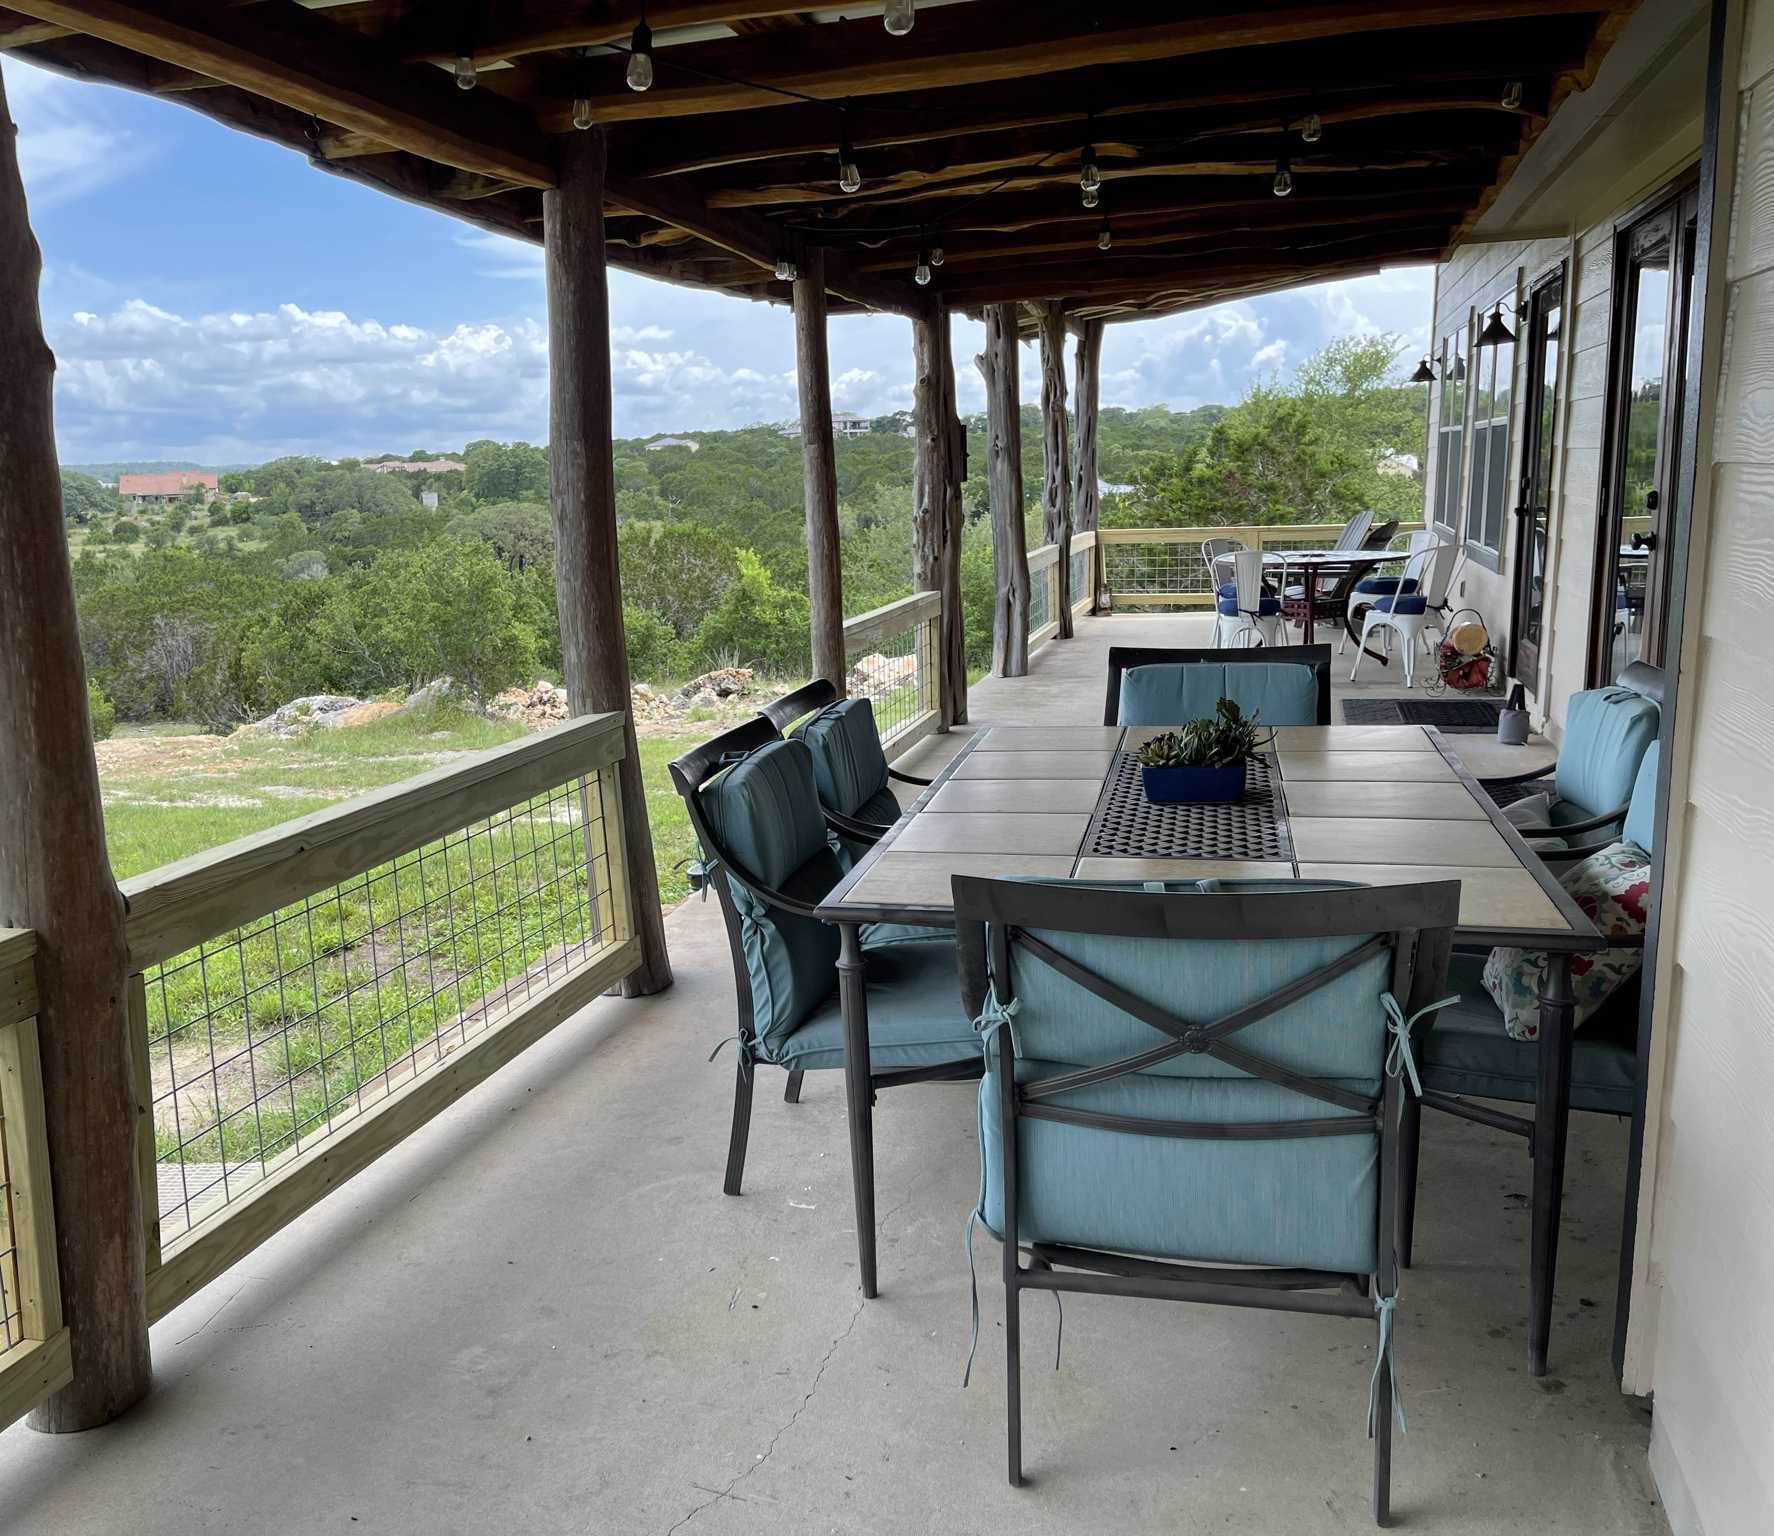 Comfortable seating on the shaded patio gives you incredible Hill Country views from your mountain perch!